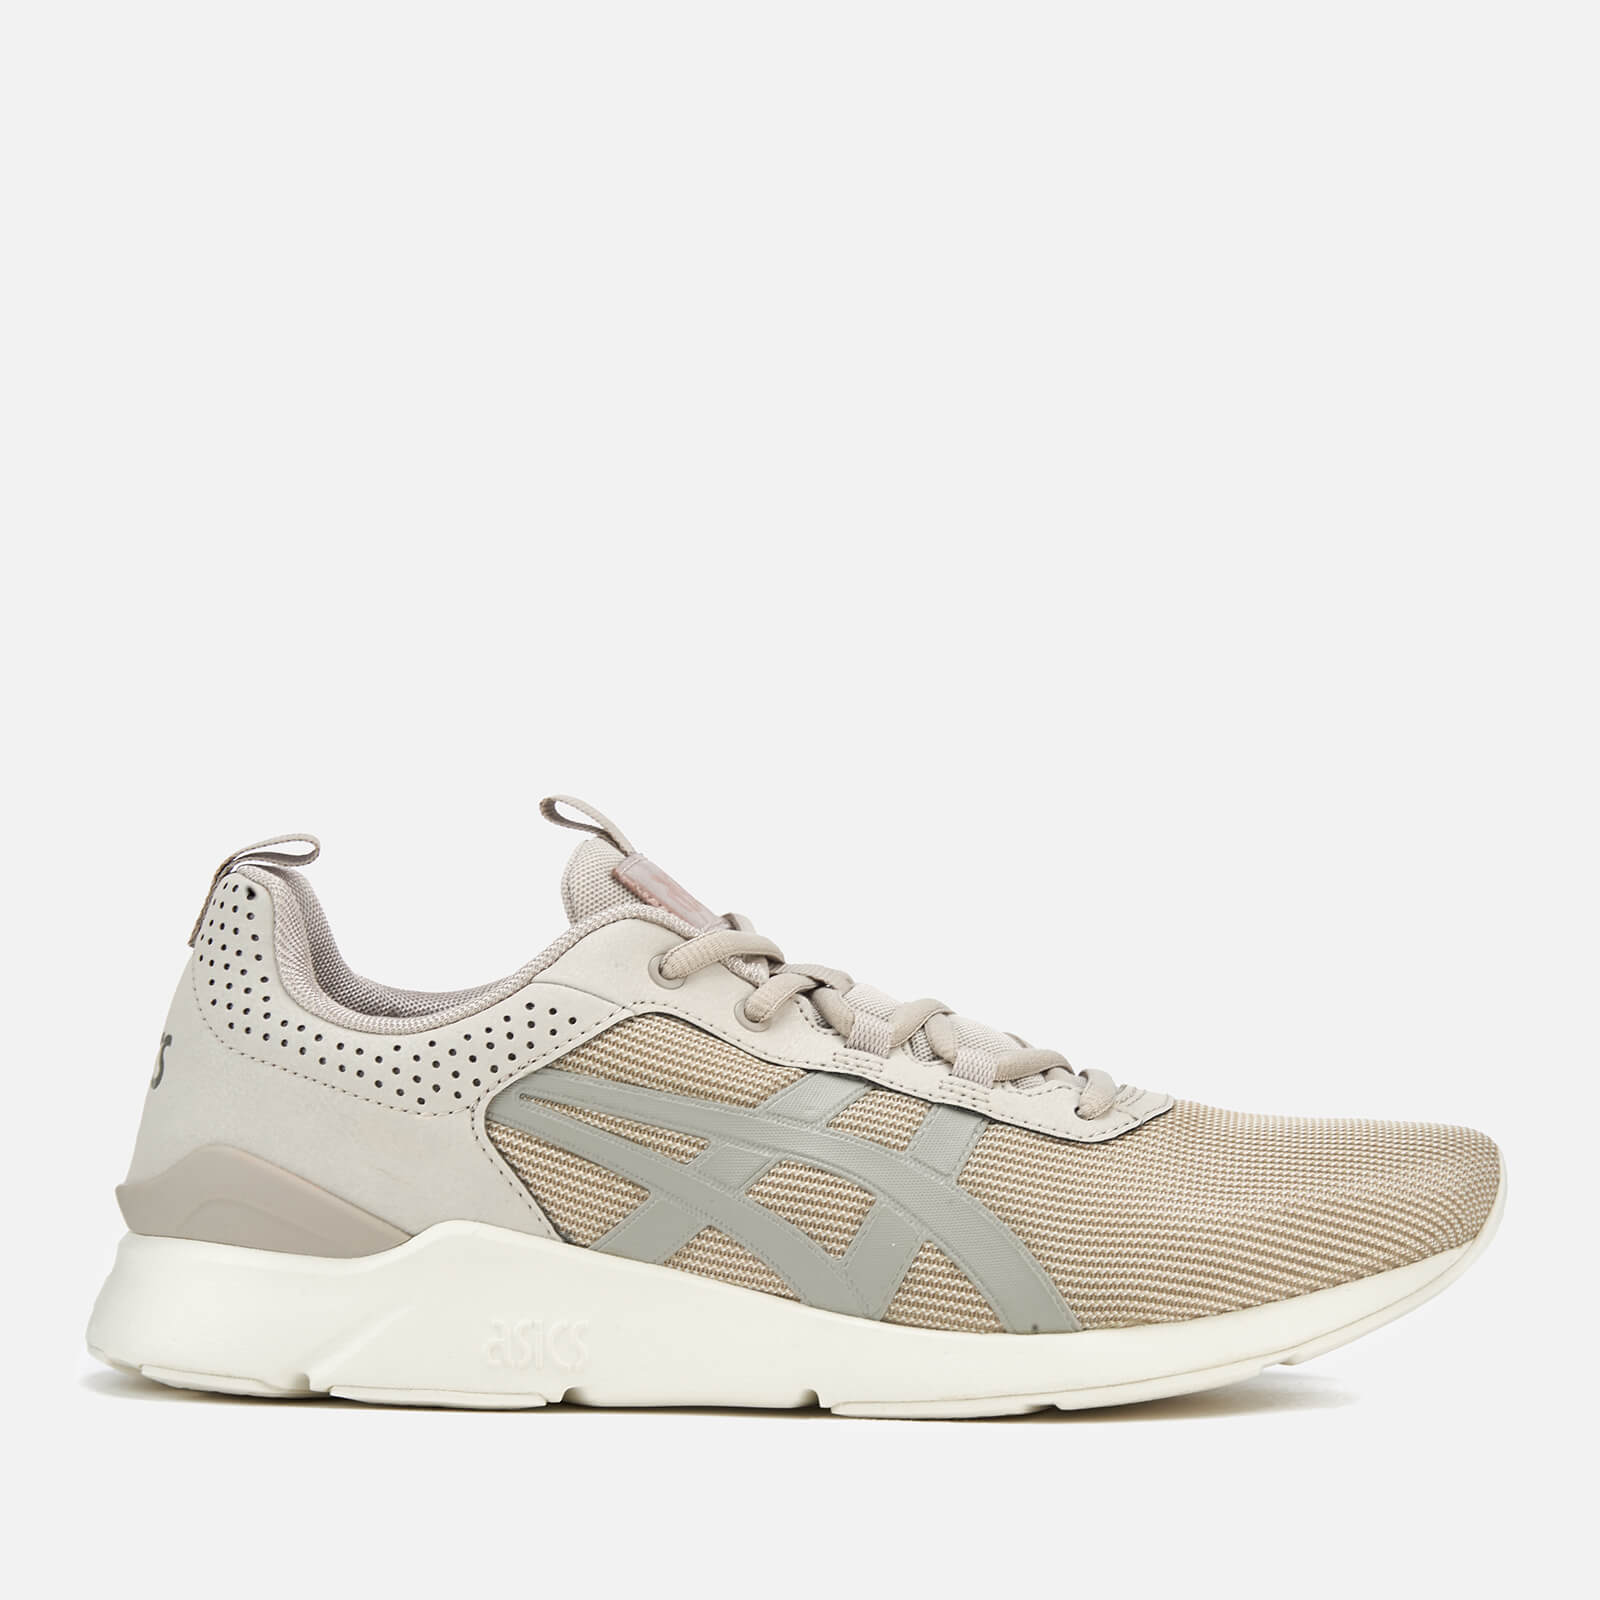 3a0c4478ea Asics Lifestyle Men's Gel-Lyte Runner Trainers - Feather Grey/Feather Grey